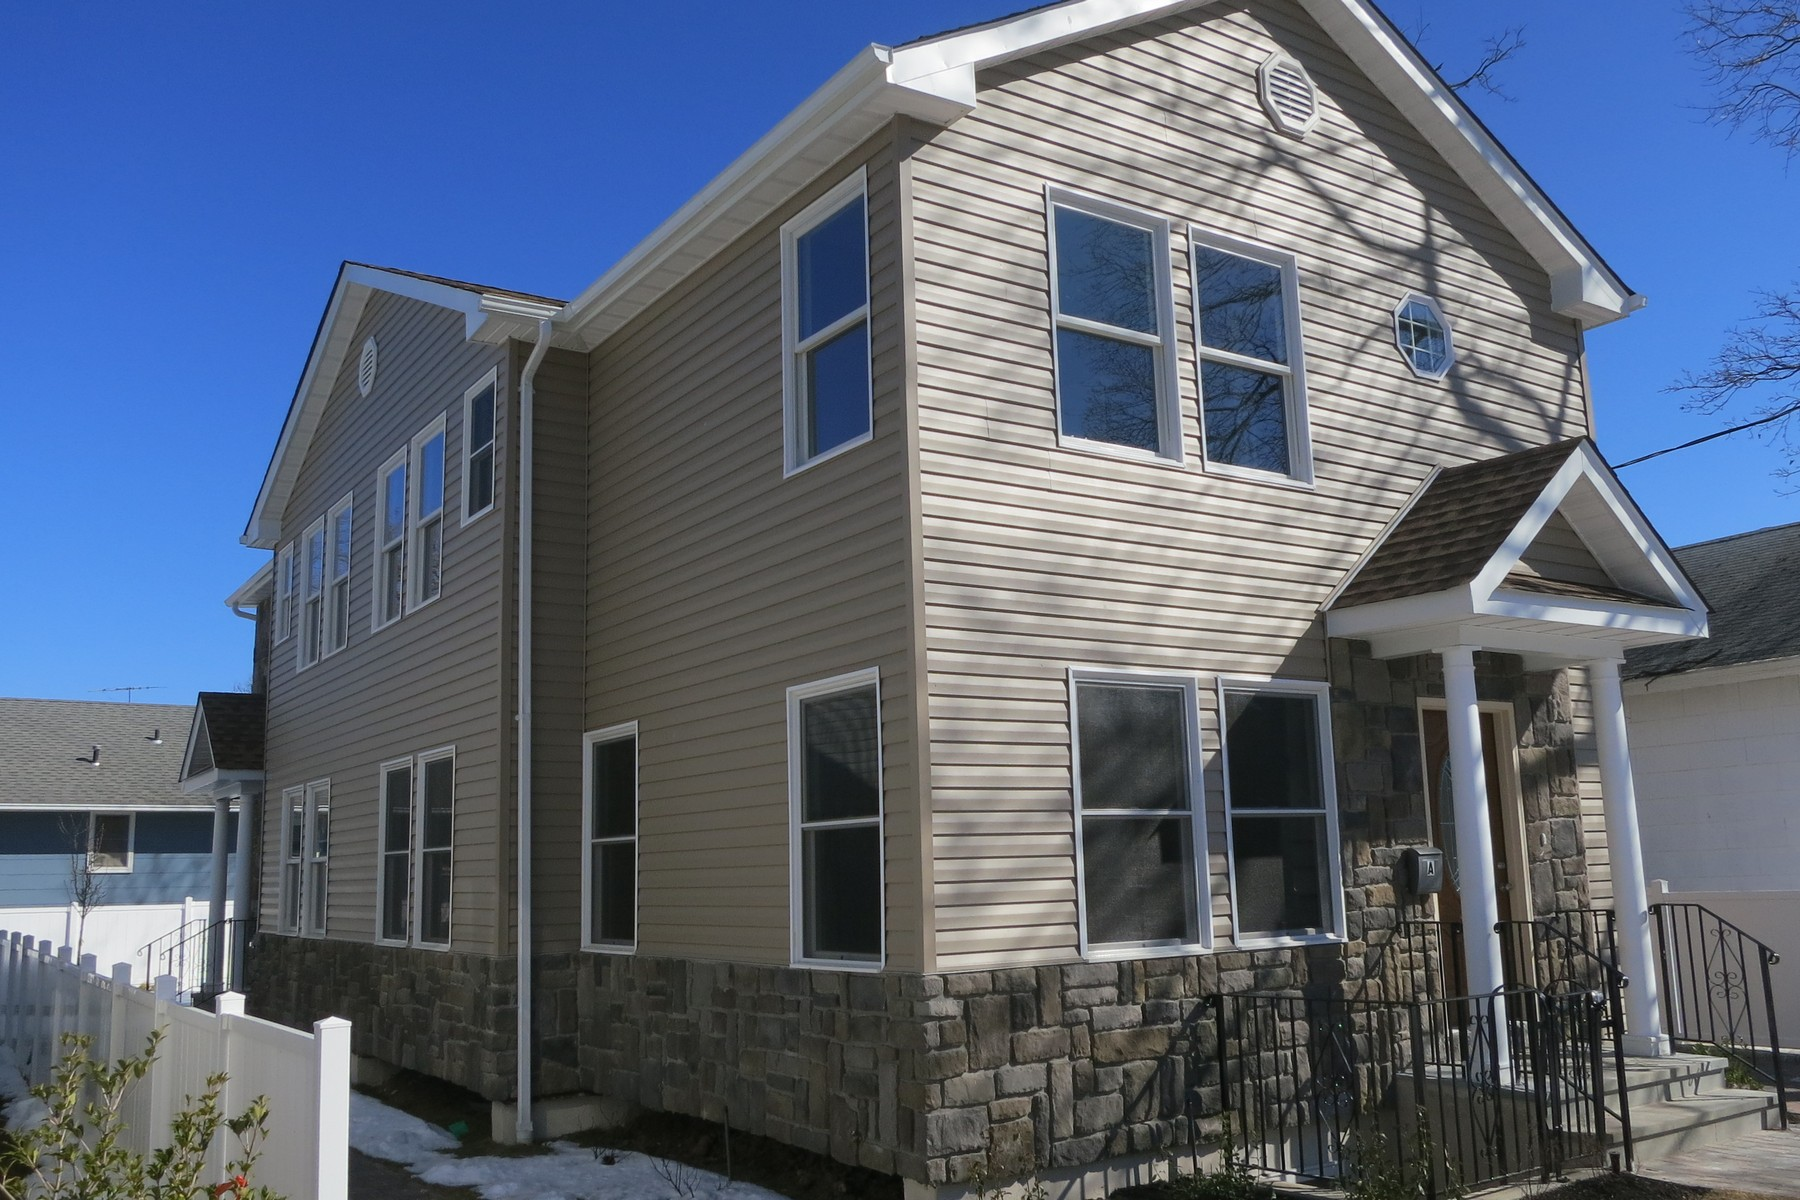 Multi-Family Home for Sale at Duplex - New Construction 56 Sagamore Hill Dr Port Washington, New York, 11050 United States